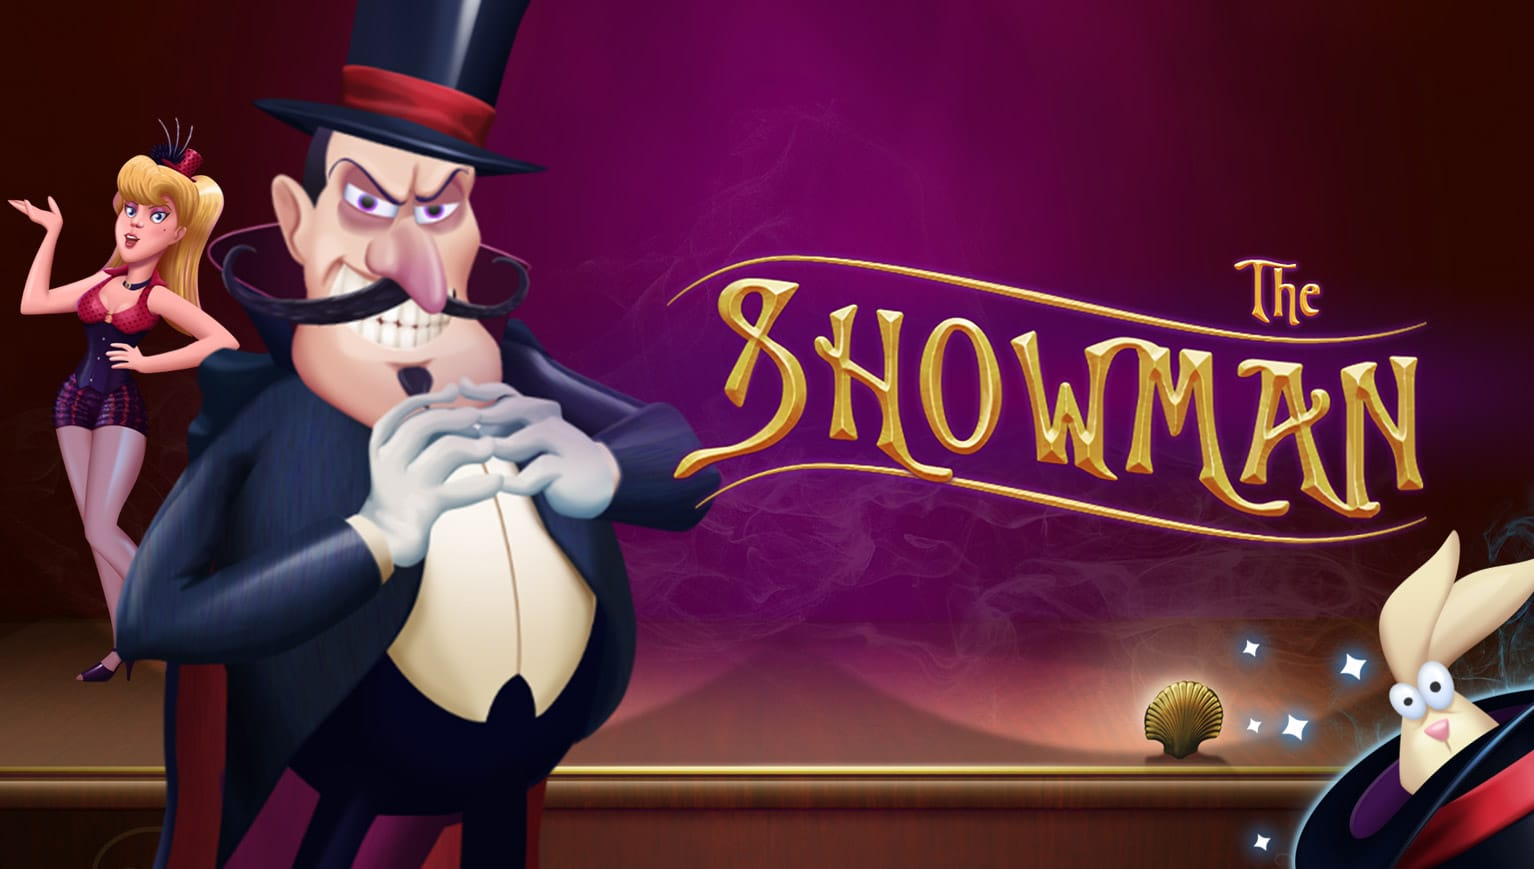 the showman casino online game logo